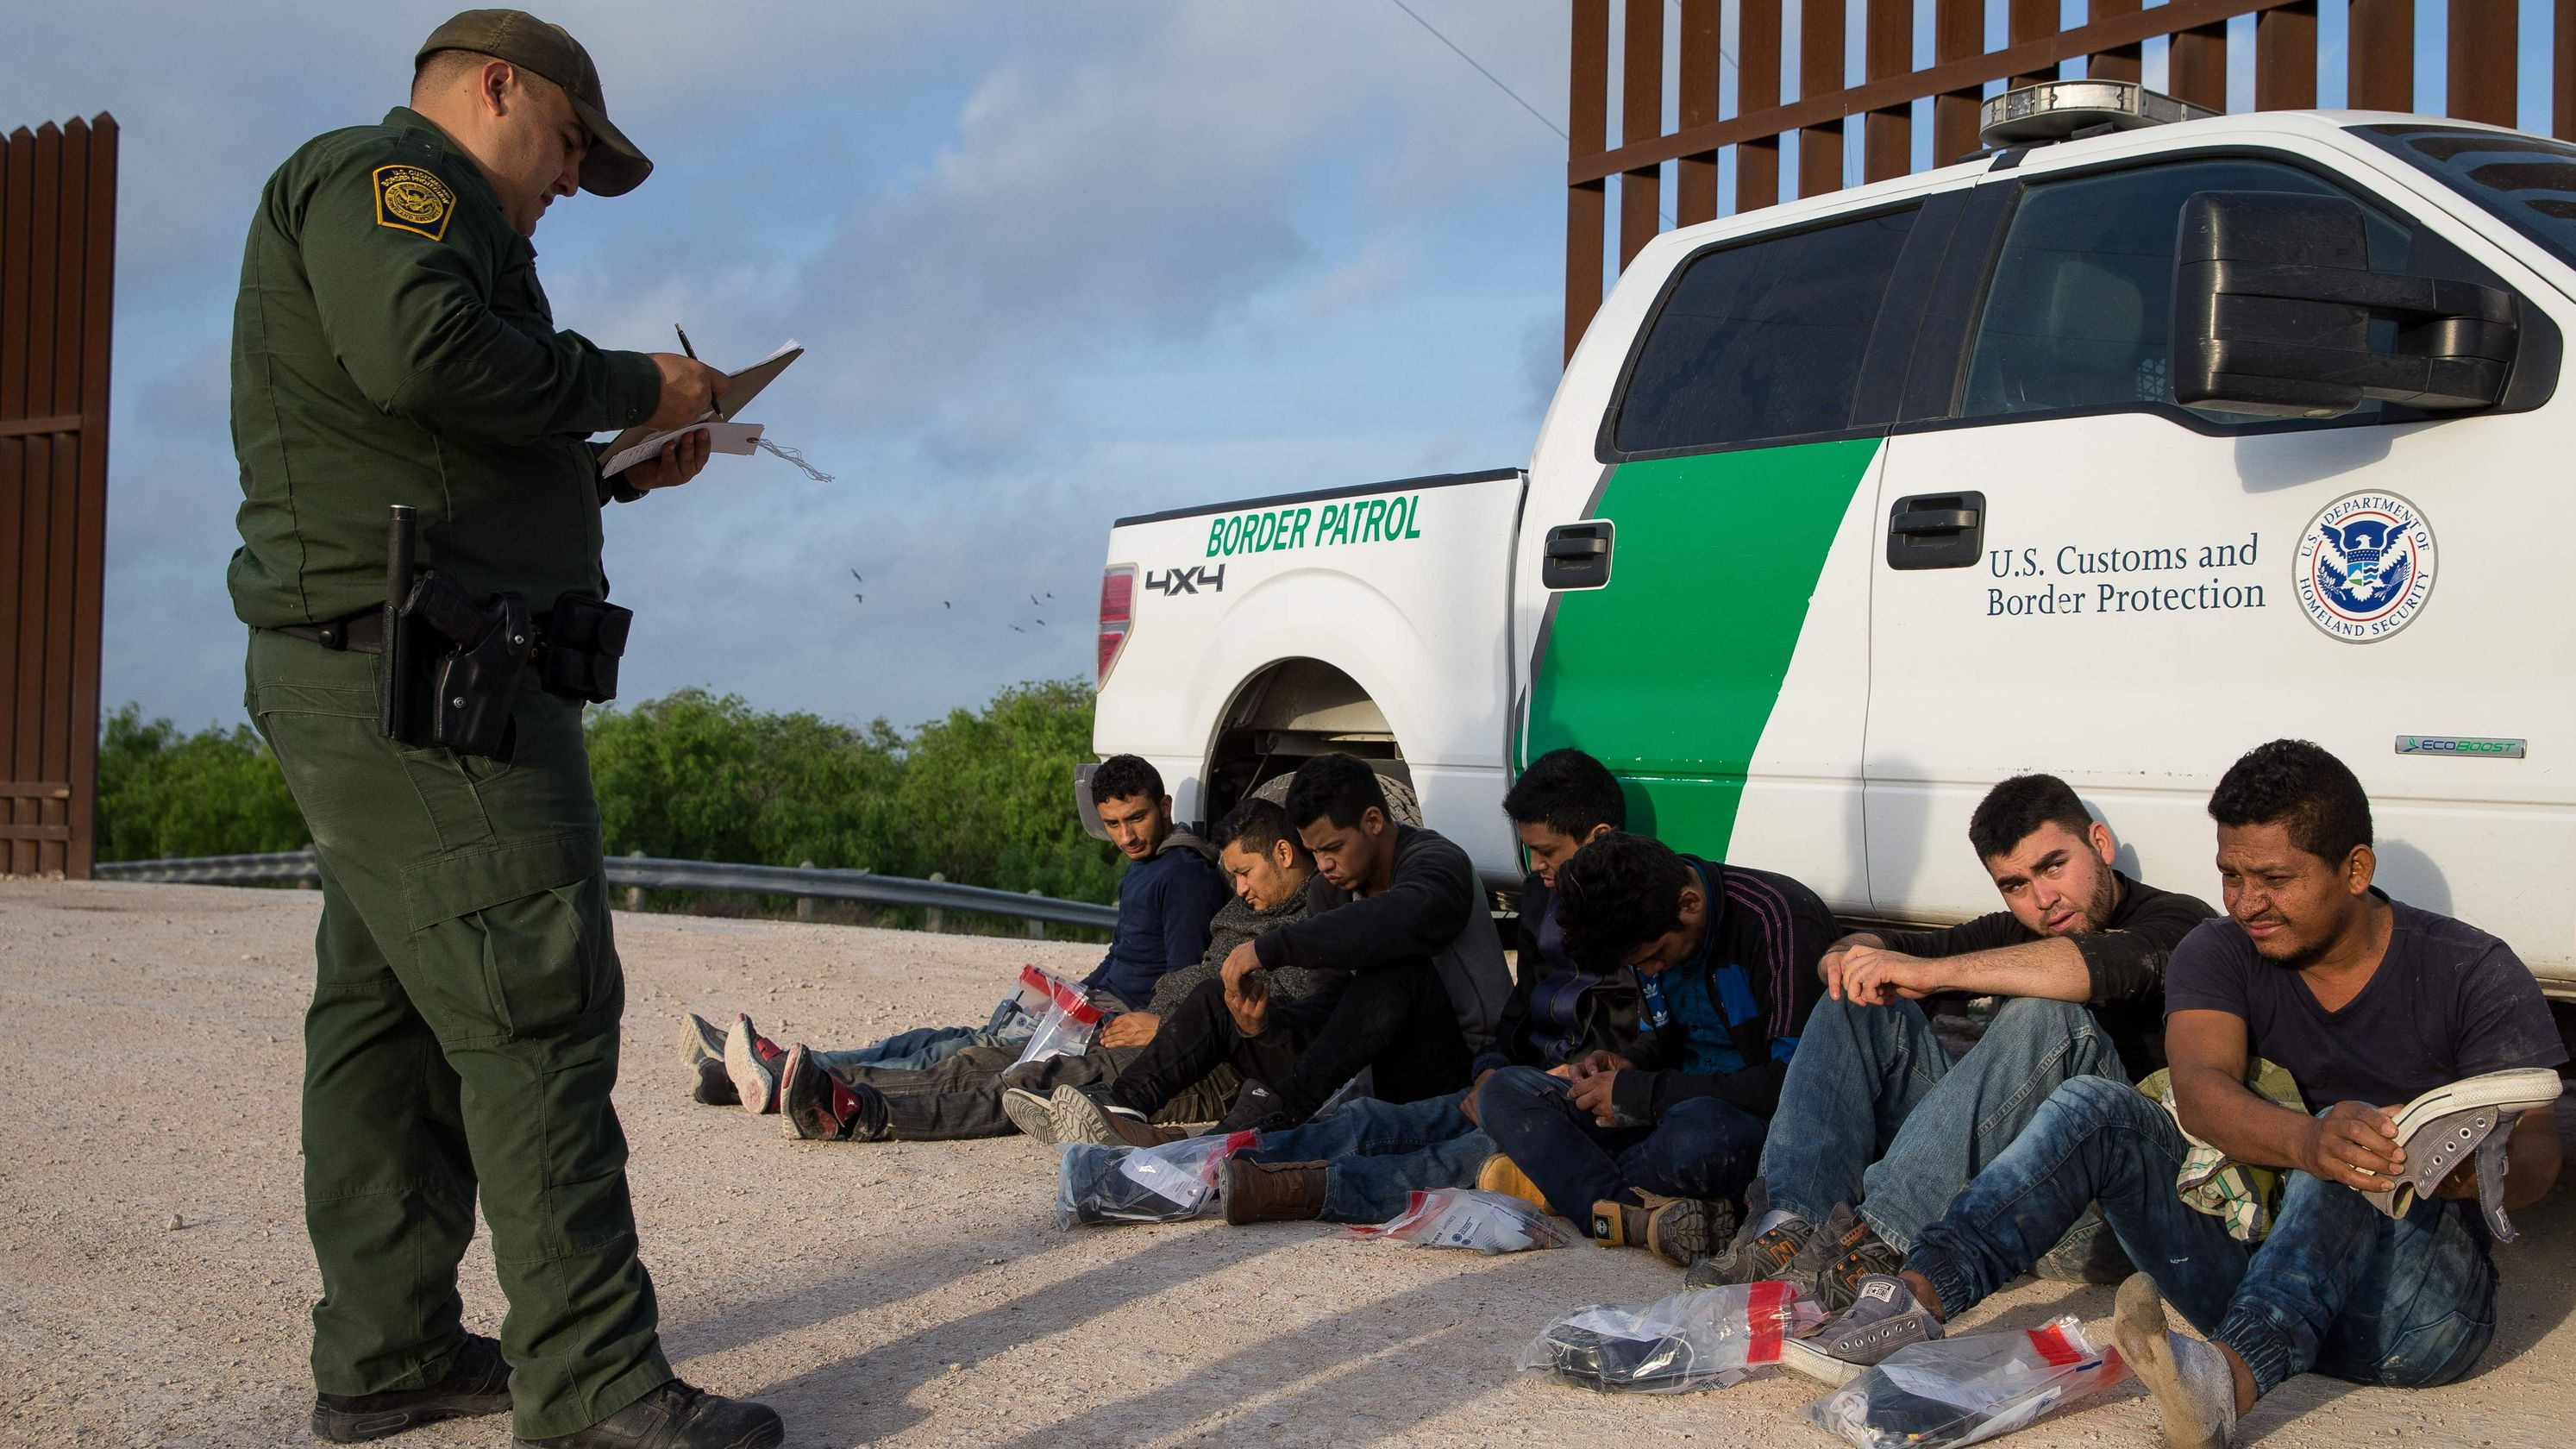 Border Patrol agent apprehends illegal immigrants shortly after they crossed the border from Mexico into the United States in the Rio Grande Valley Sector near McAllen, Texas.